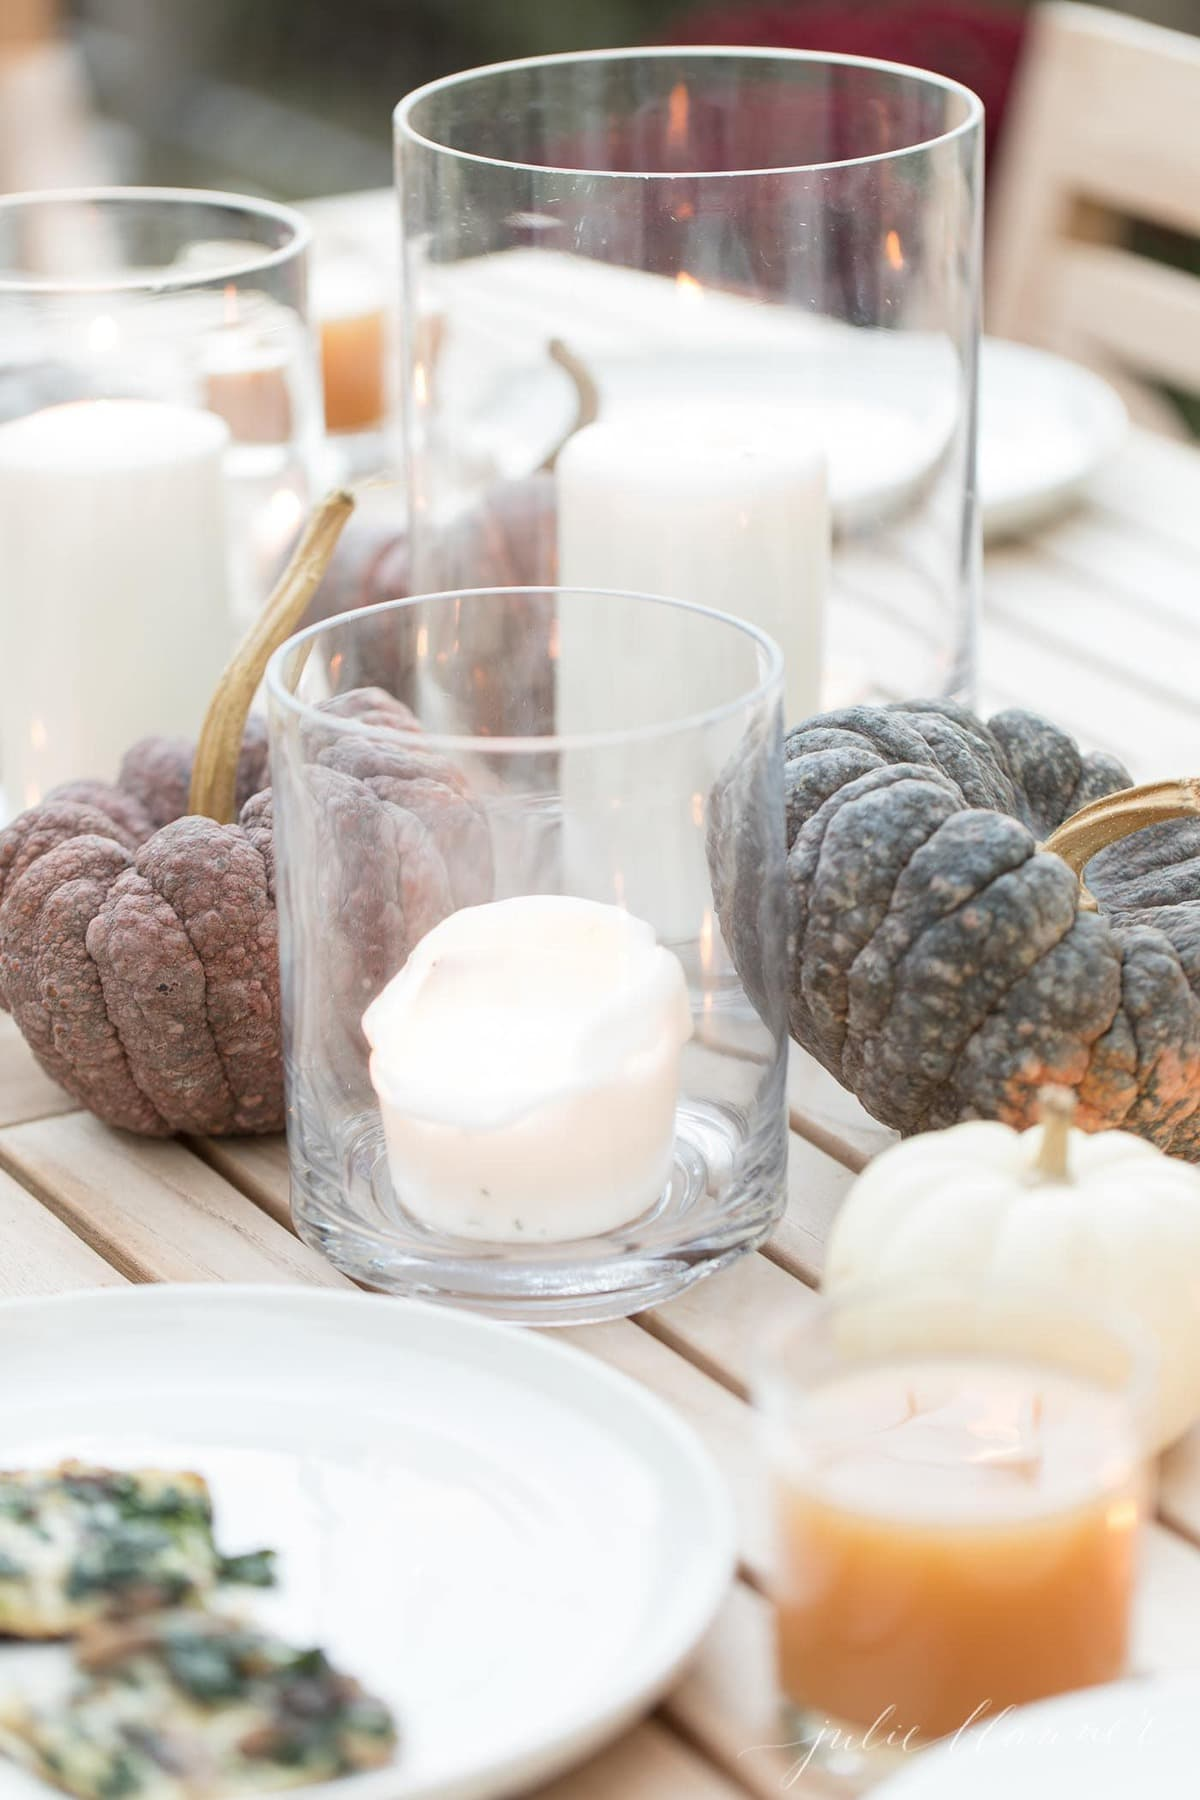 A centerpiece of glass hurricanes with candles and heirloom pumpkins on a wood table.